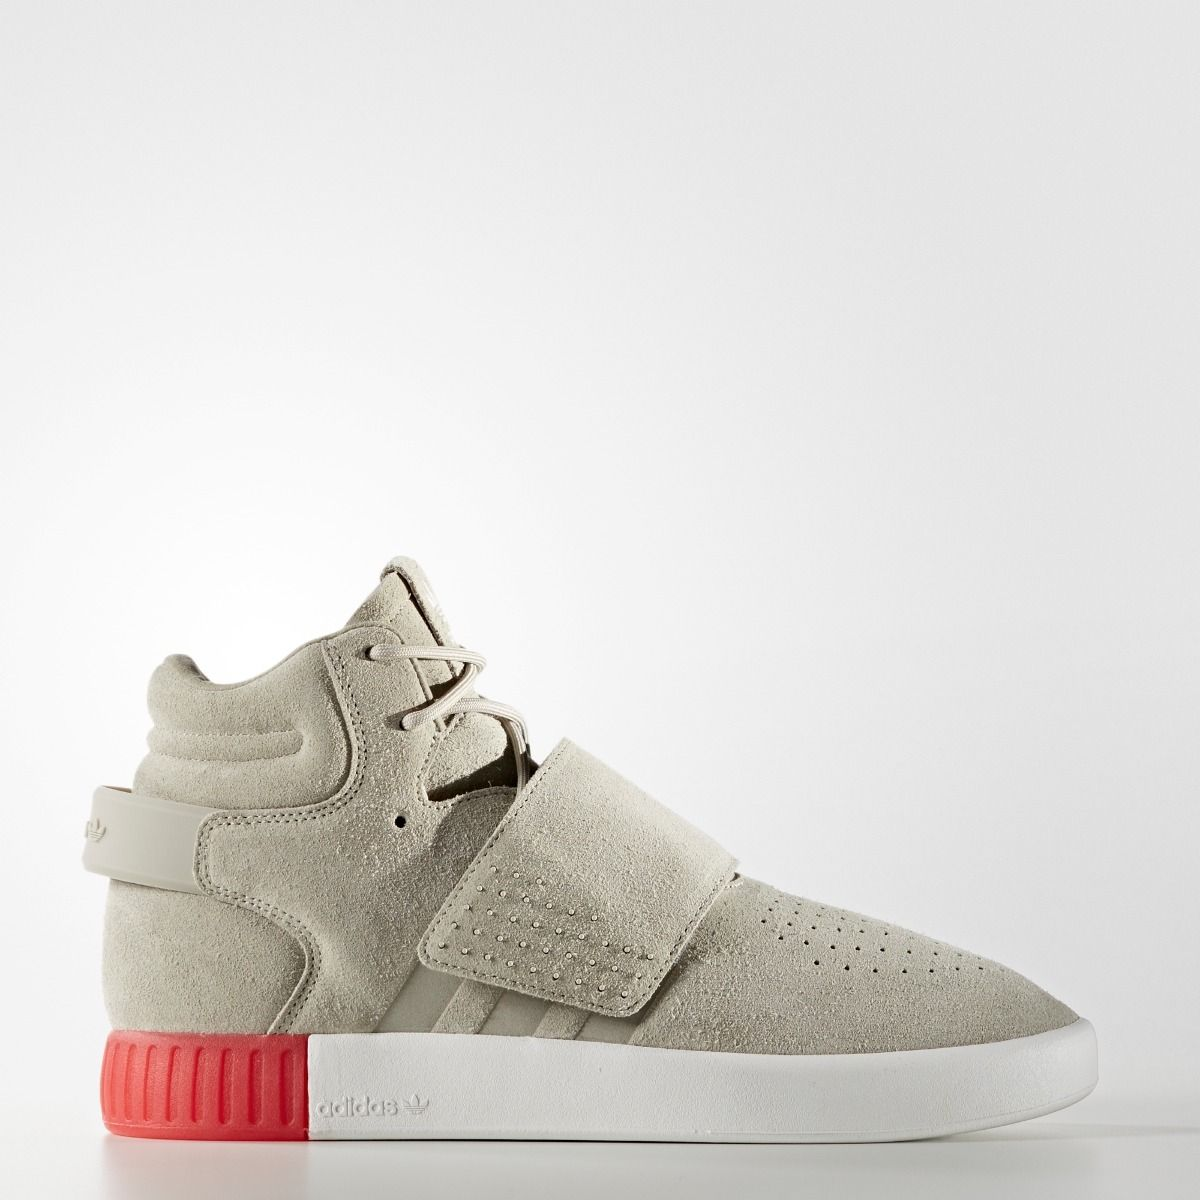 hot sale online 0c8b6 5d362 Adidas: Tubular Strap Invader (Sesame/ Vivid Red) from Stush Fashionista